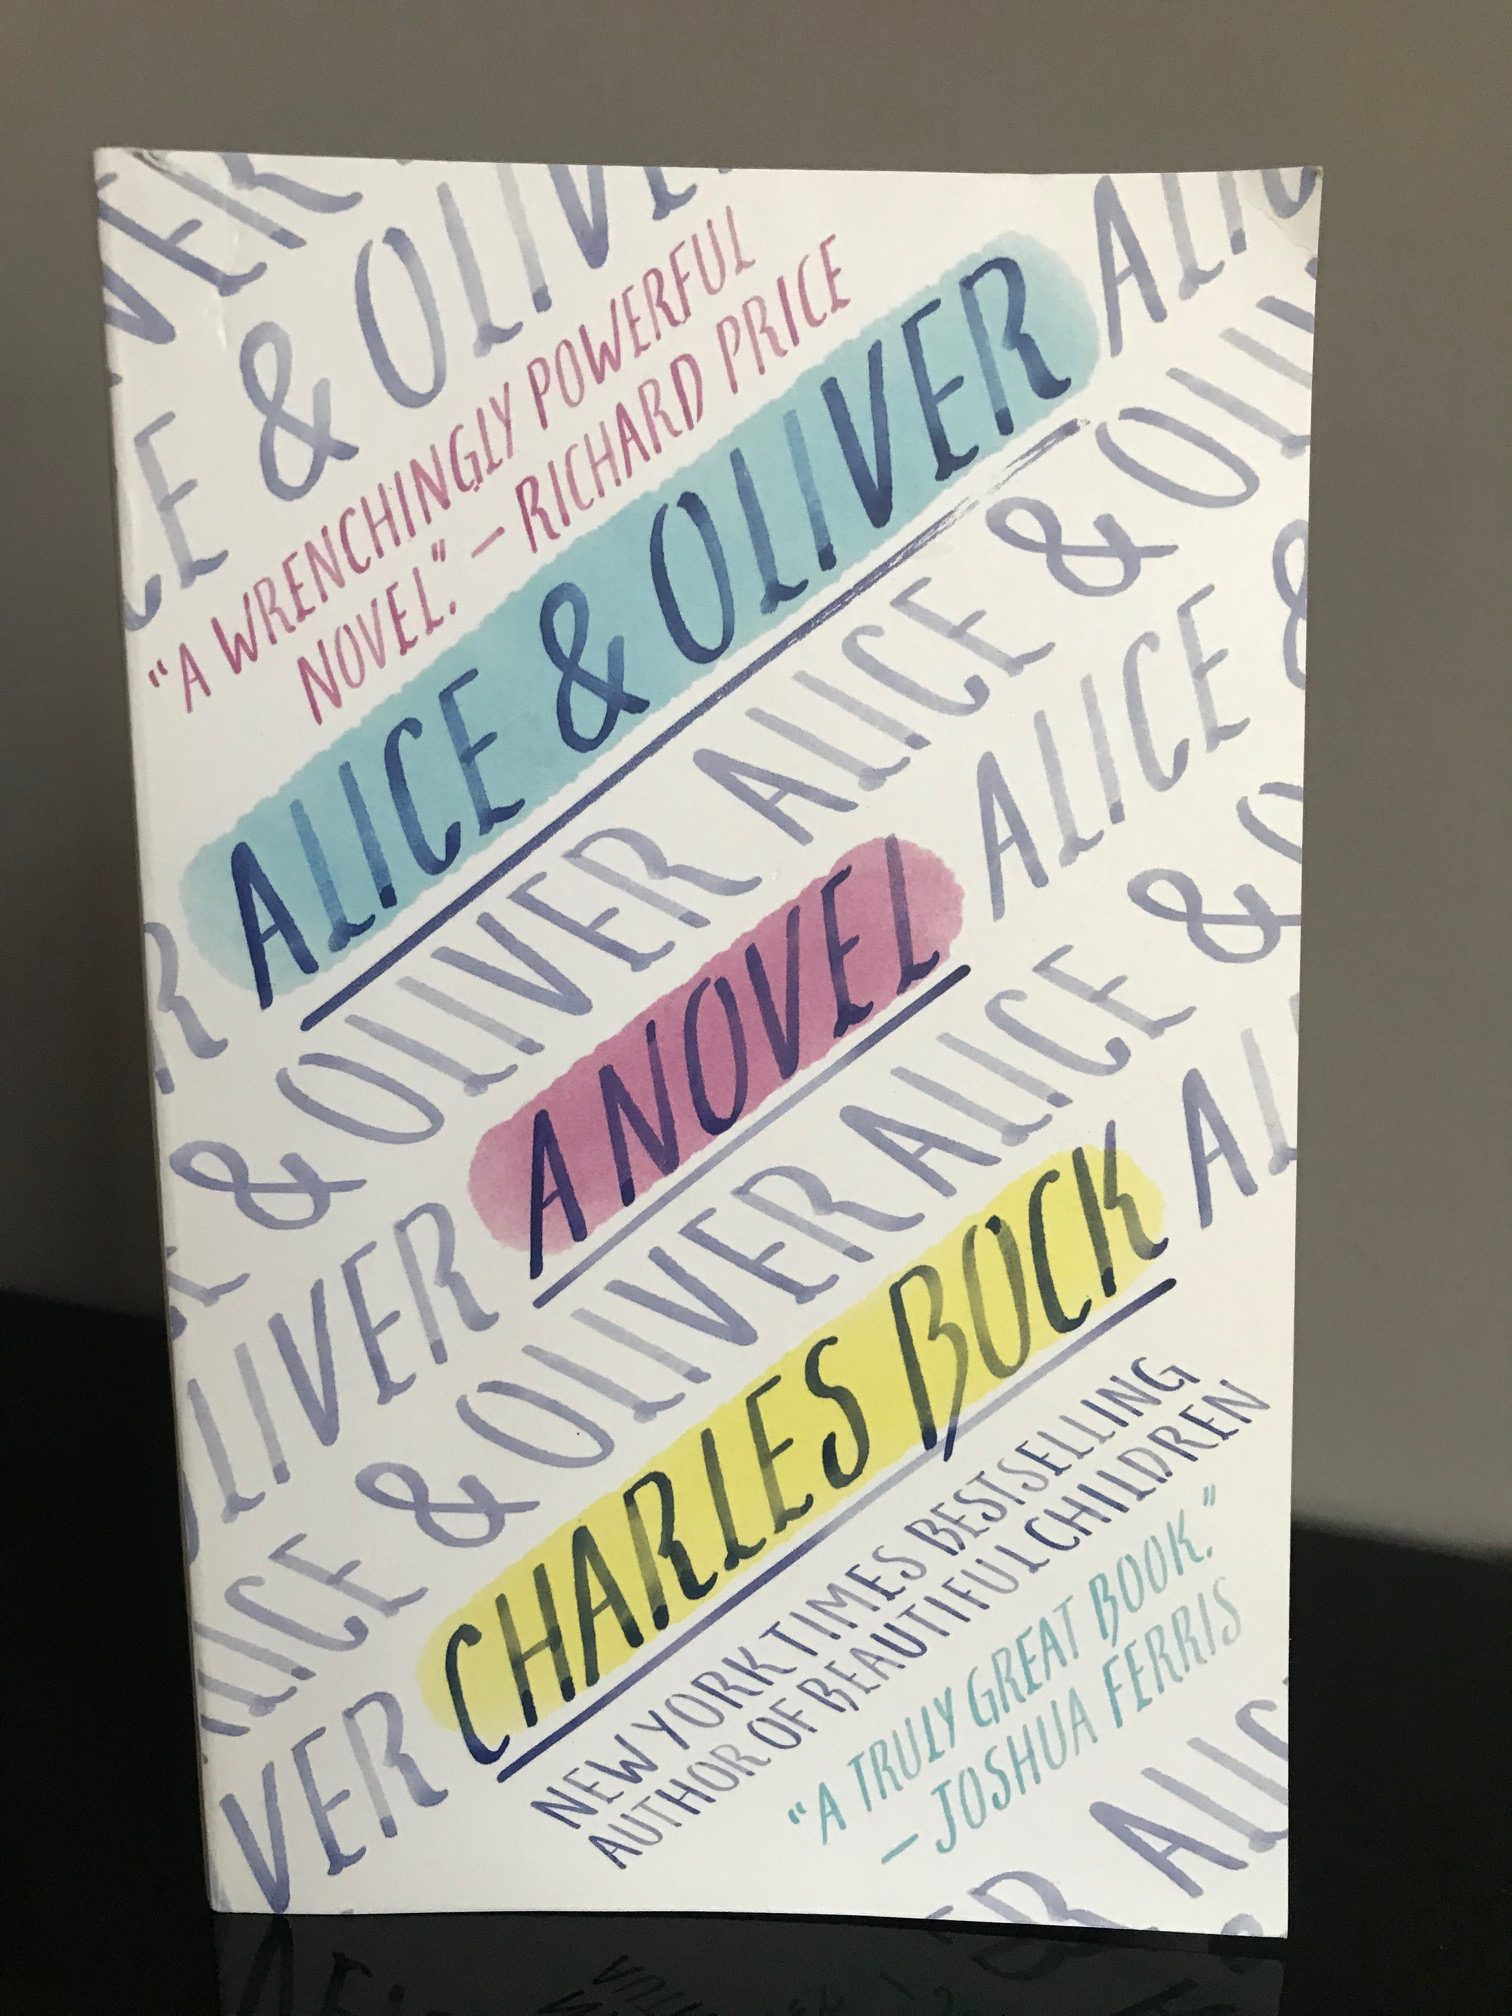 Book Review: Alice & Oliver by Charles Bock